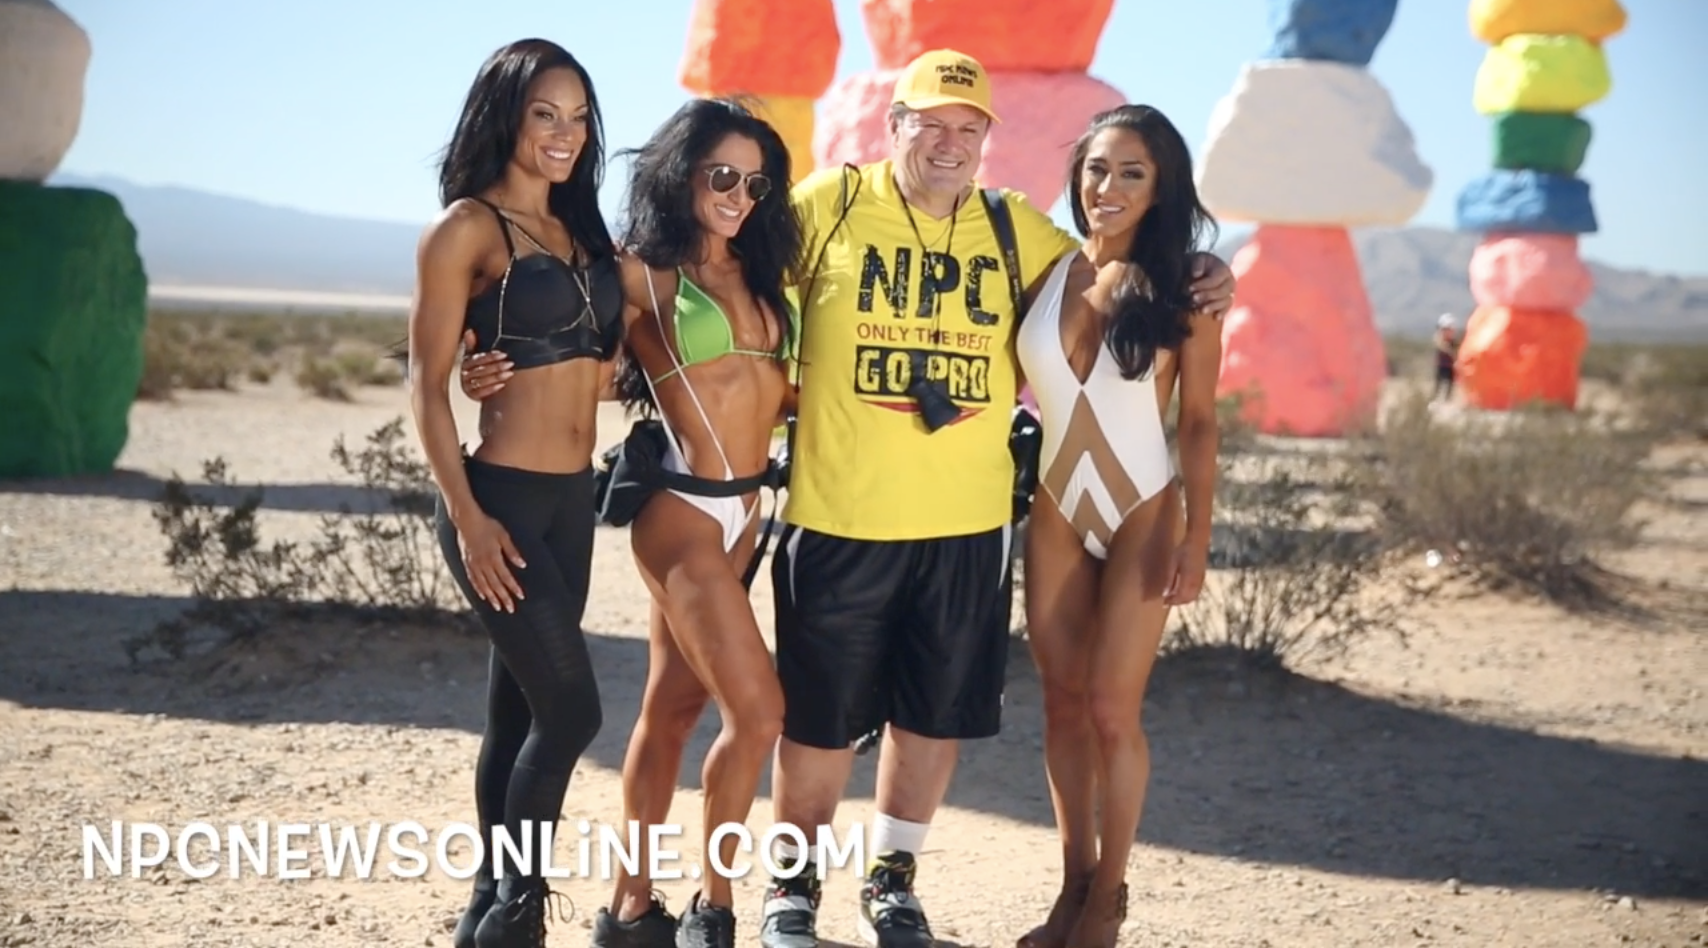 2017 J.M. Manion Seven Magic Mountains Shoot Behind the Scenes Video With IFBB Bikini Pro's Breena Martinez, Christie Marquez & Tamara Jordan Haddad